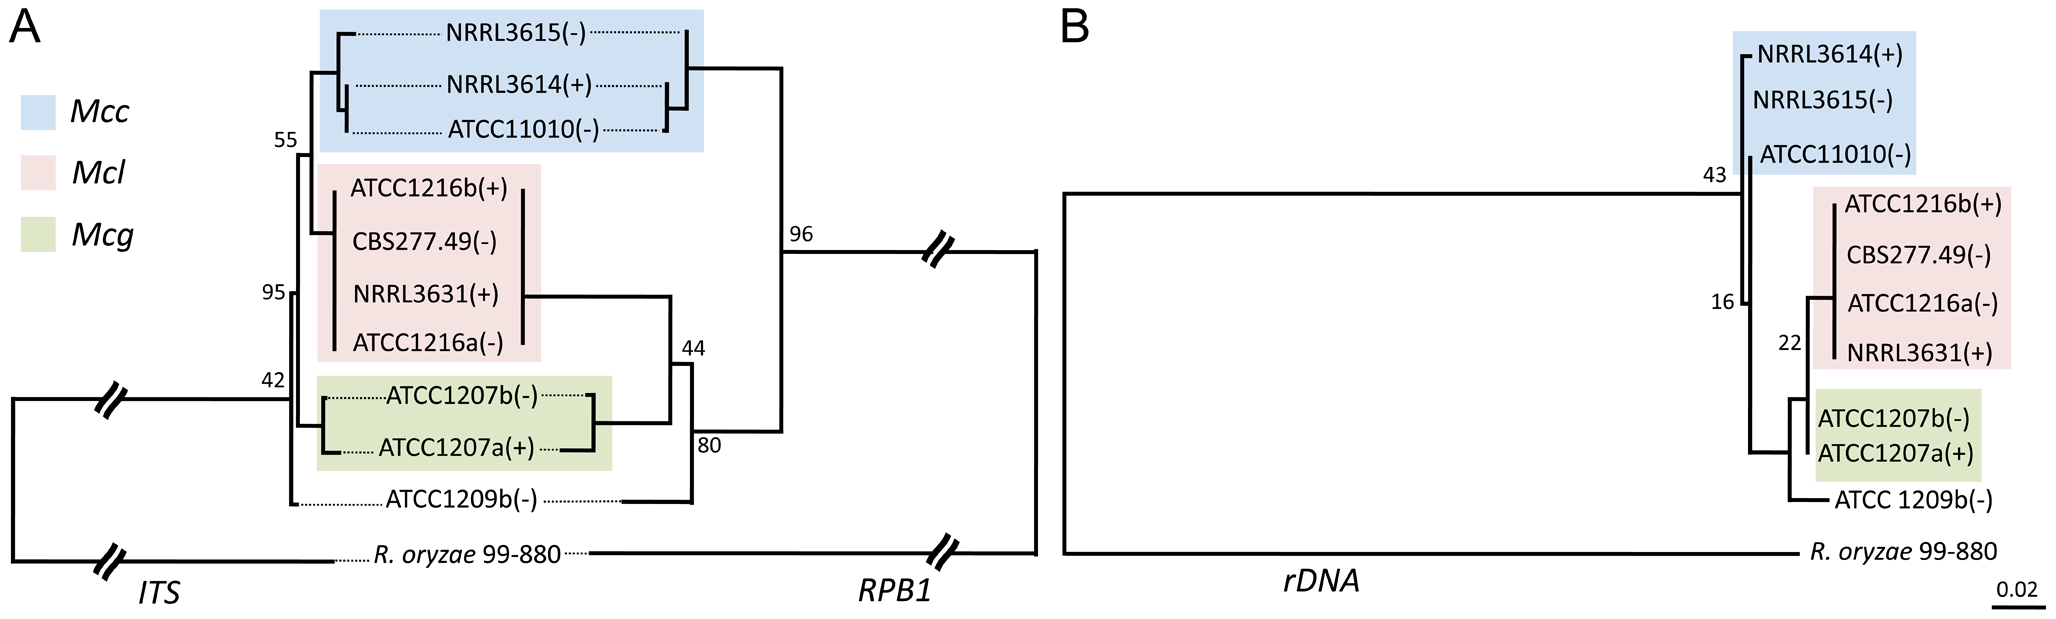 Phylogenetic relationships of the <i>M. circinelloides</i> subspecies.